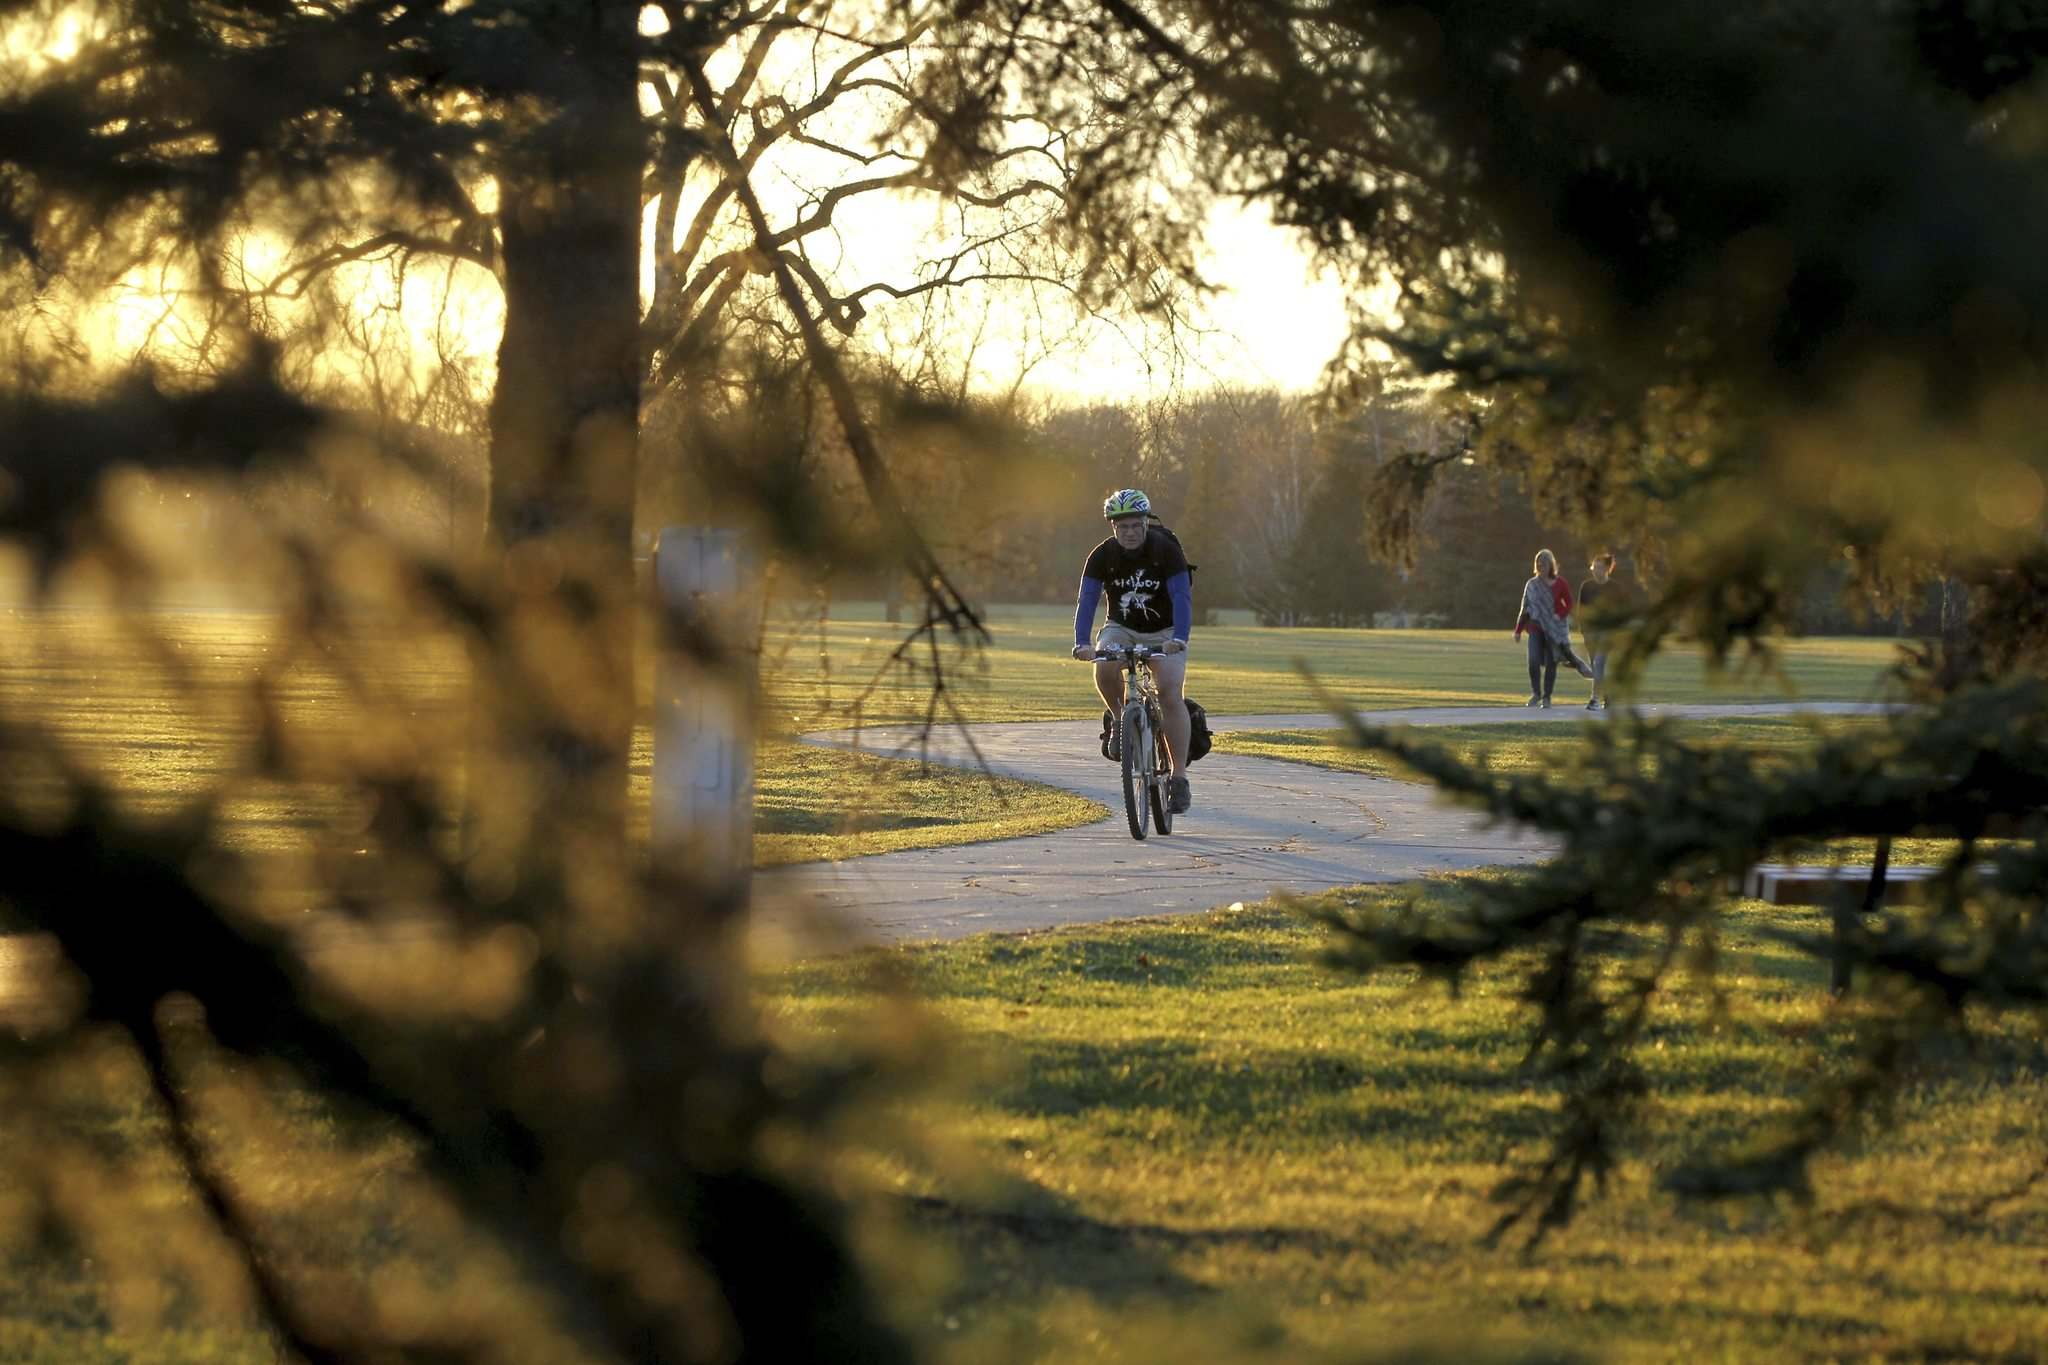 RUTH BONNEVILLE / WINNIPEG FREE PRESS</p><p>A cyclist makes their way down a winding path at the west entranceway to Assiniboine Park as temperatures hovered close to 20 C Wednesday.</p>